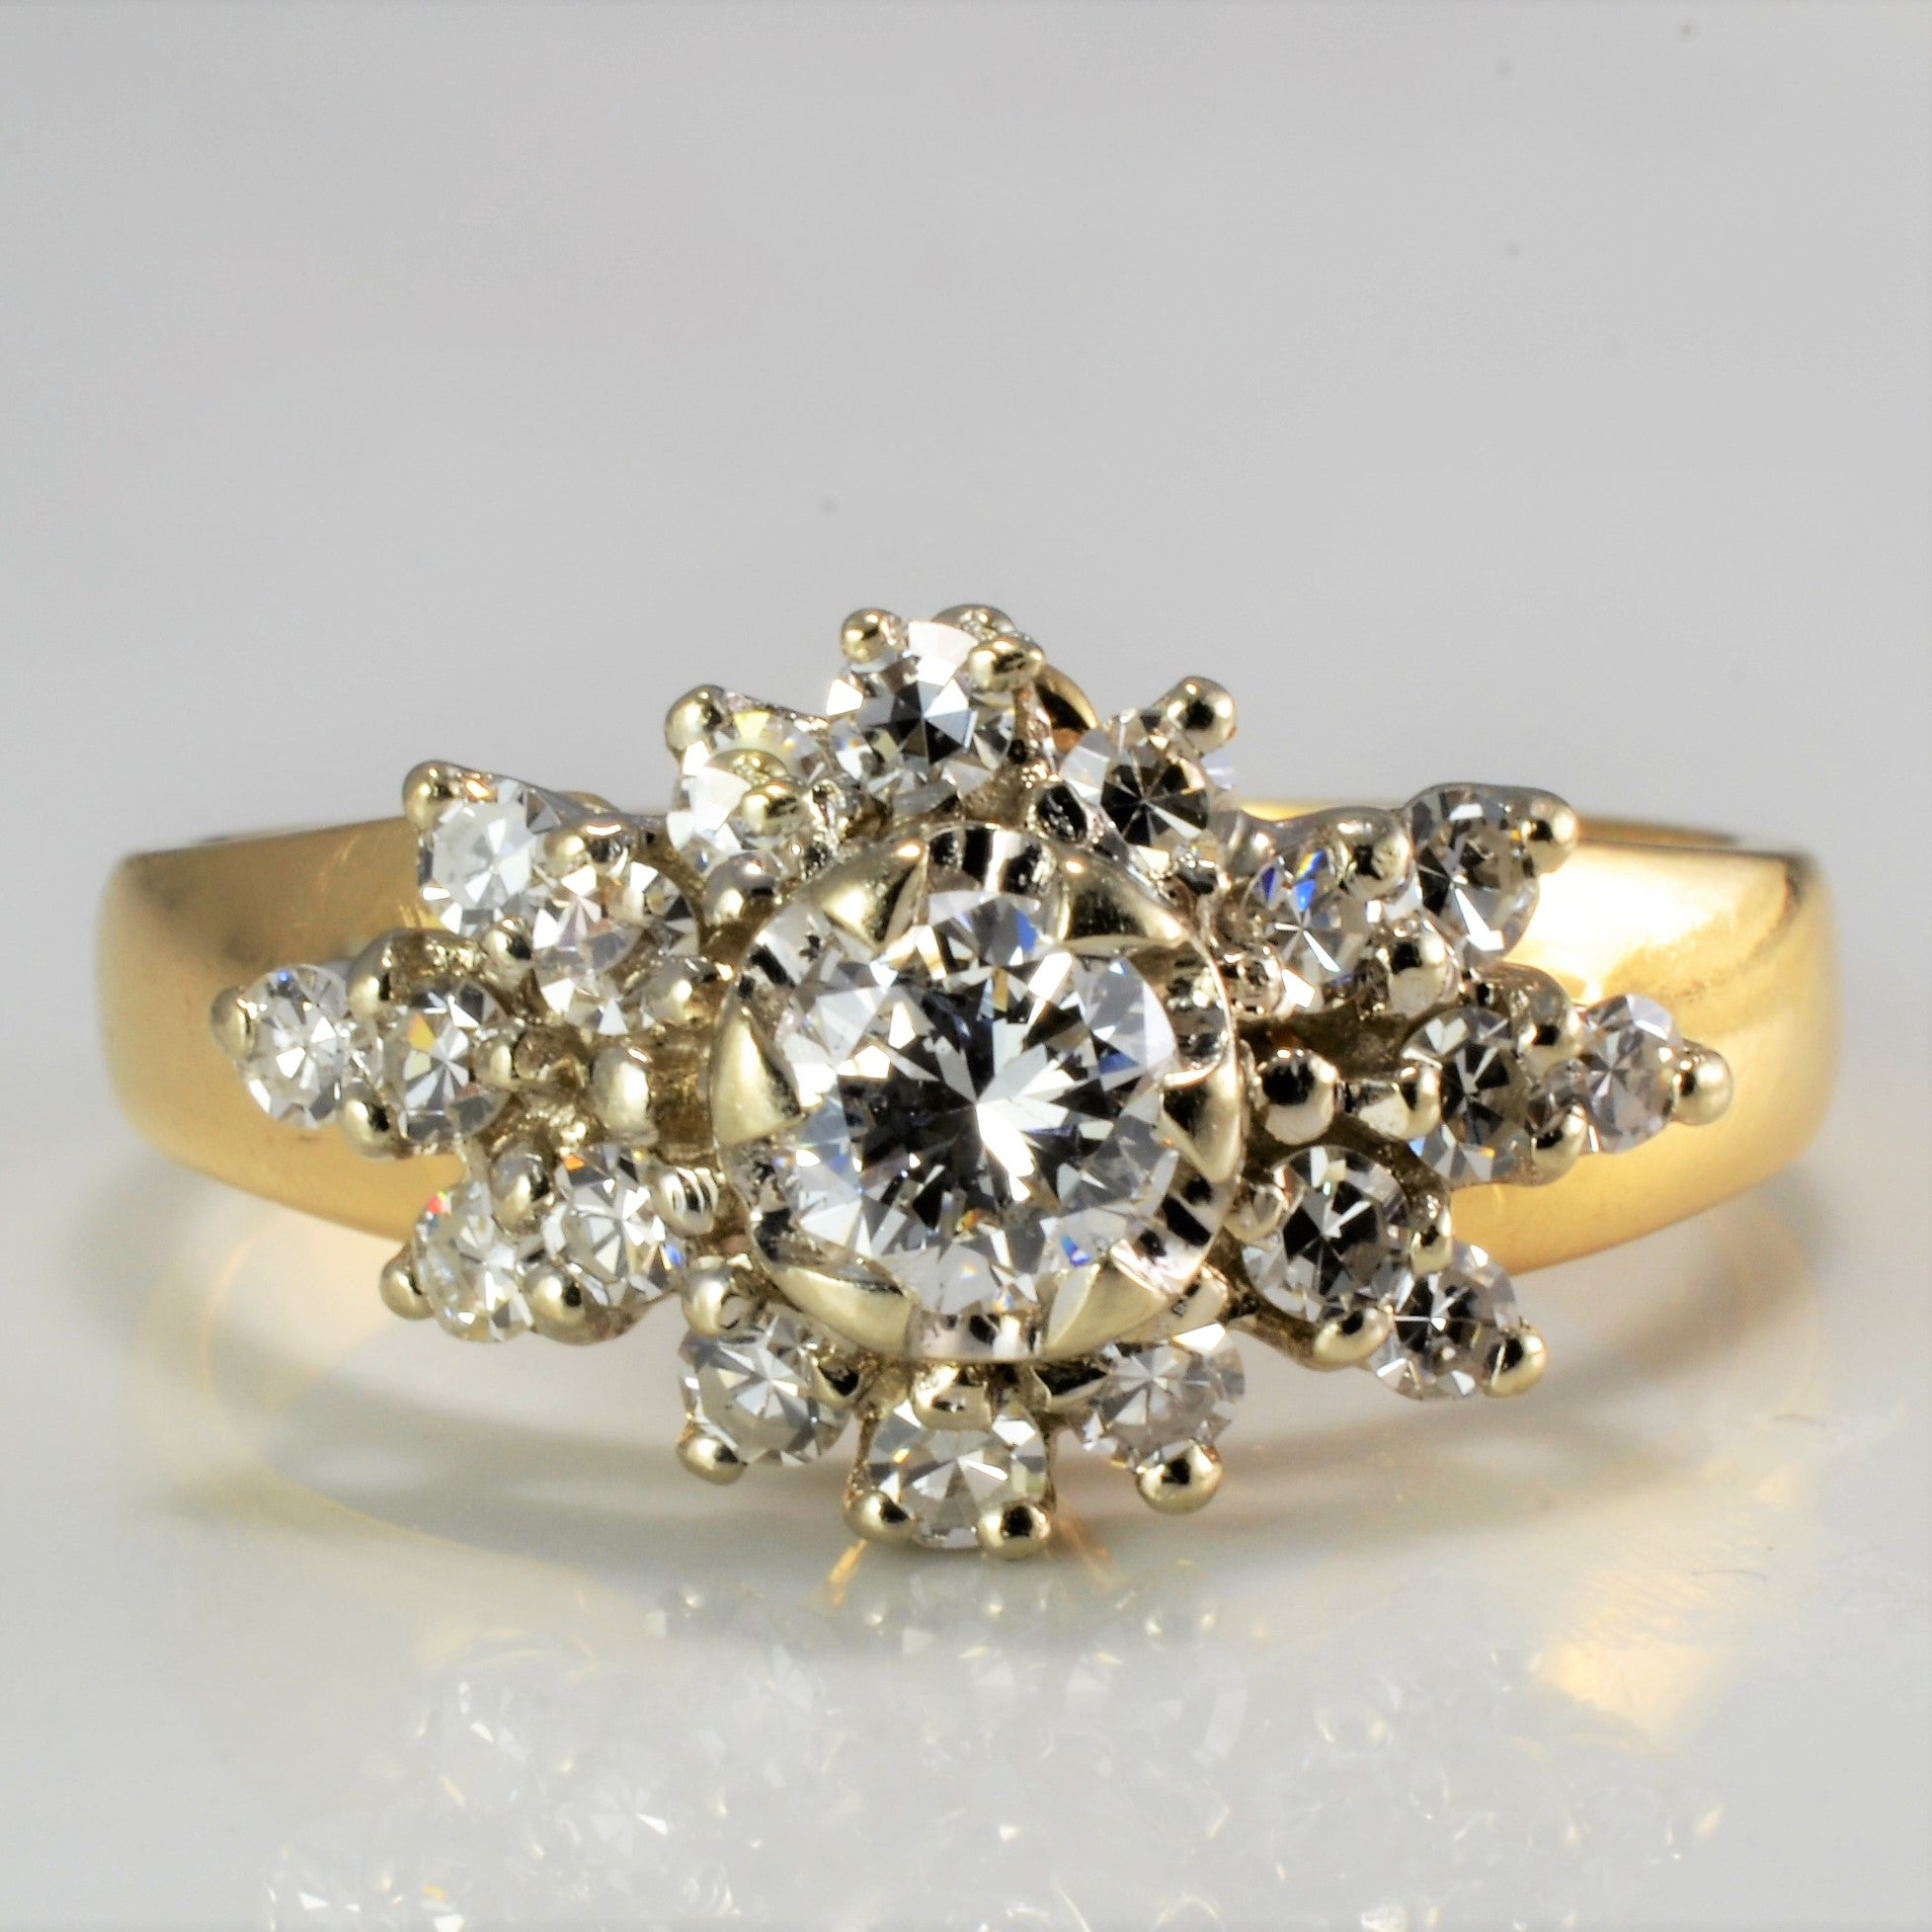 Cluster Diamond Engagement Ring | 0.52 ctw, SZ 5.75 |